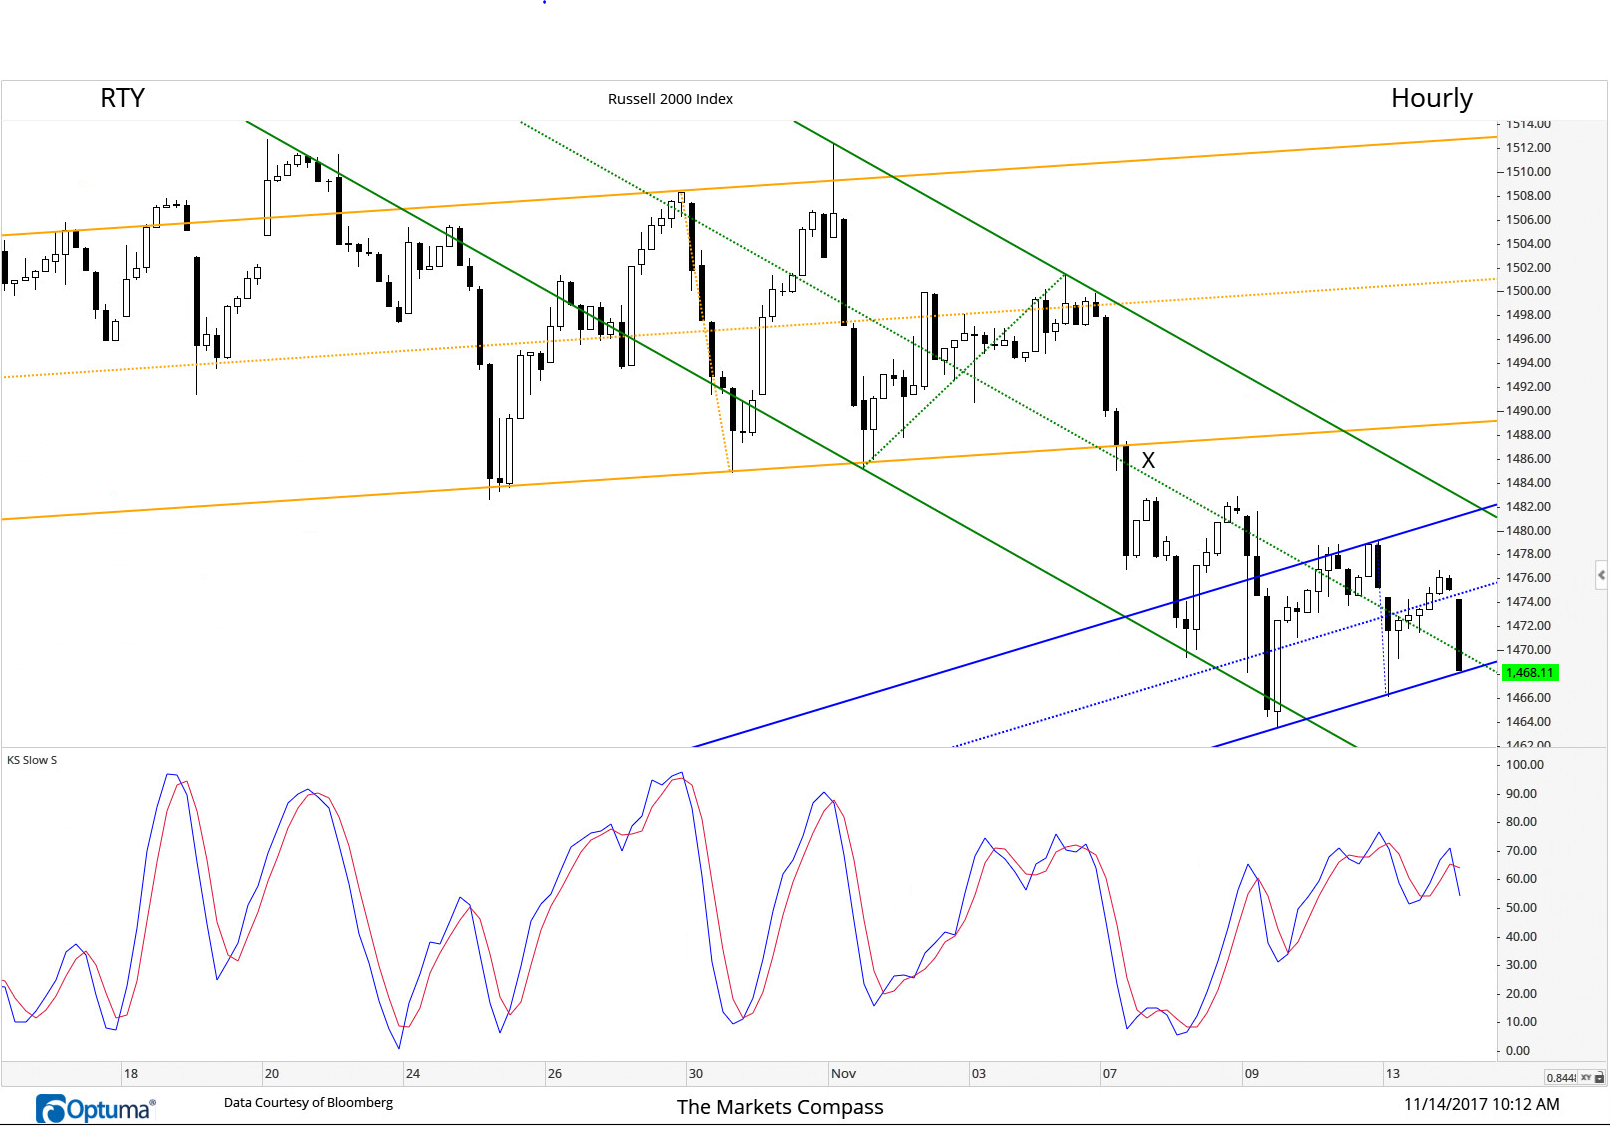 Weekness continues to seep into the RTY short term. First the break of the longer term Schiff Adjusted Pitchfork Median Line (Orange) and the second downtrending Schiff Adjusted Pitchfork Median Line (Green) at X. Then, being uable to return to the Upper Parallel of the Schiff Adjust Pitchfork three times and now teetering on the Lower Parallel of the shorter term Schiff Adjusted Pitchfork (blue) in concert with a lower high in the Slow Stochastic.